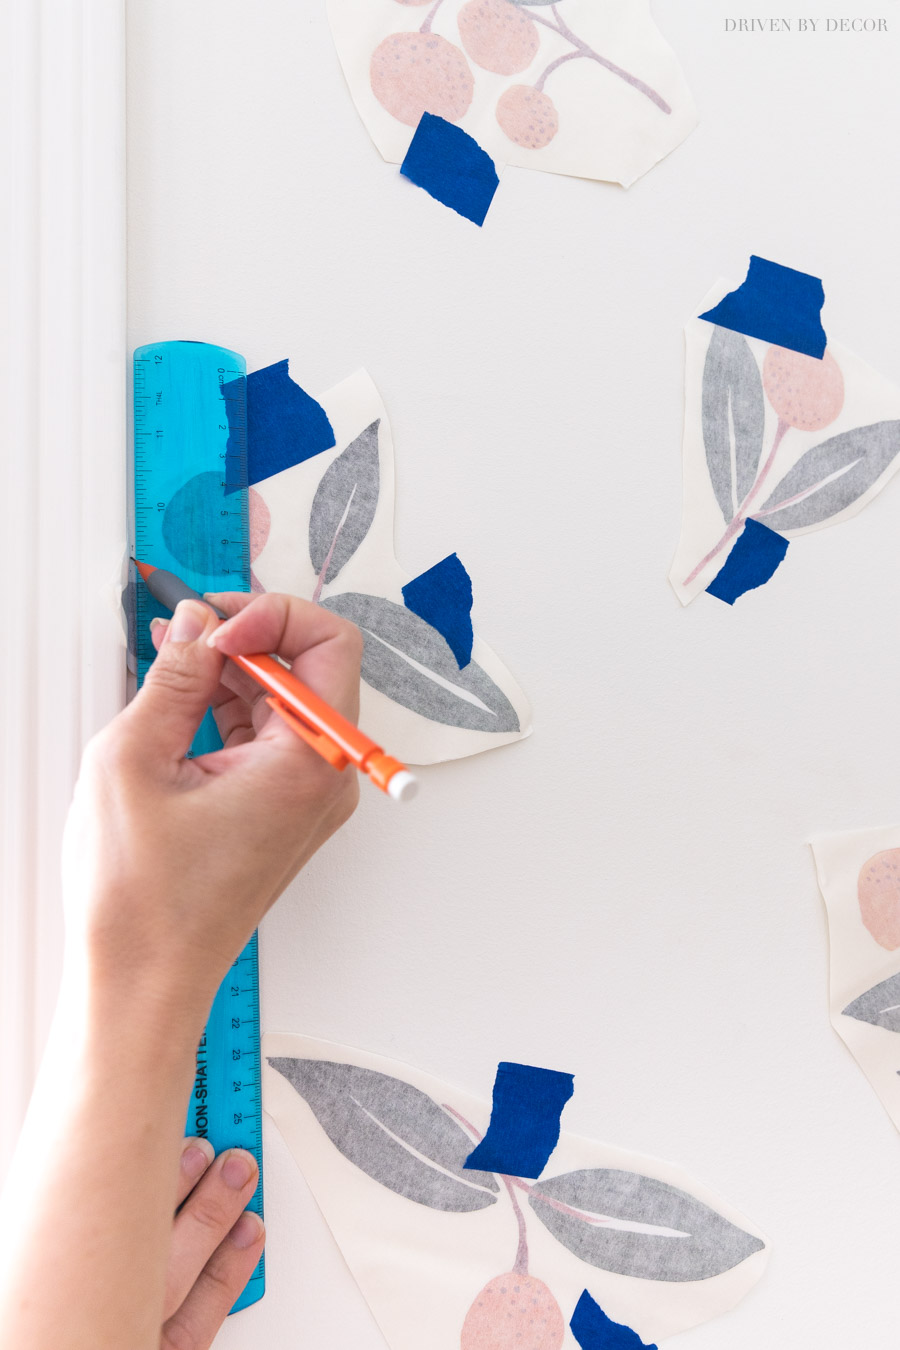 Tips on how to apply vinyl wall decals that overlap the edge of the wall